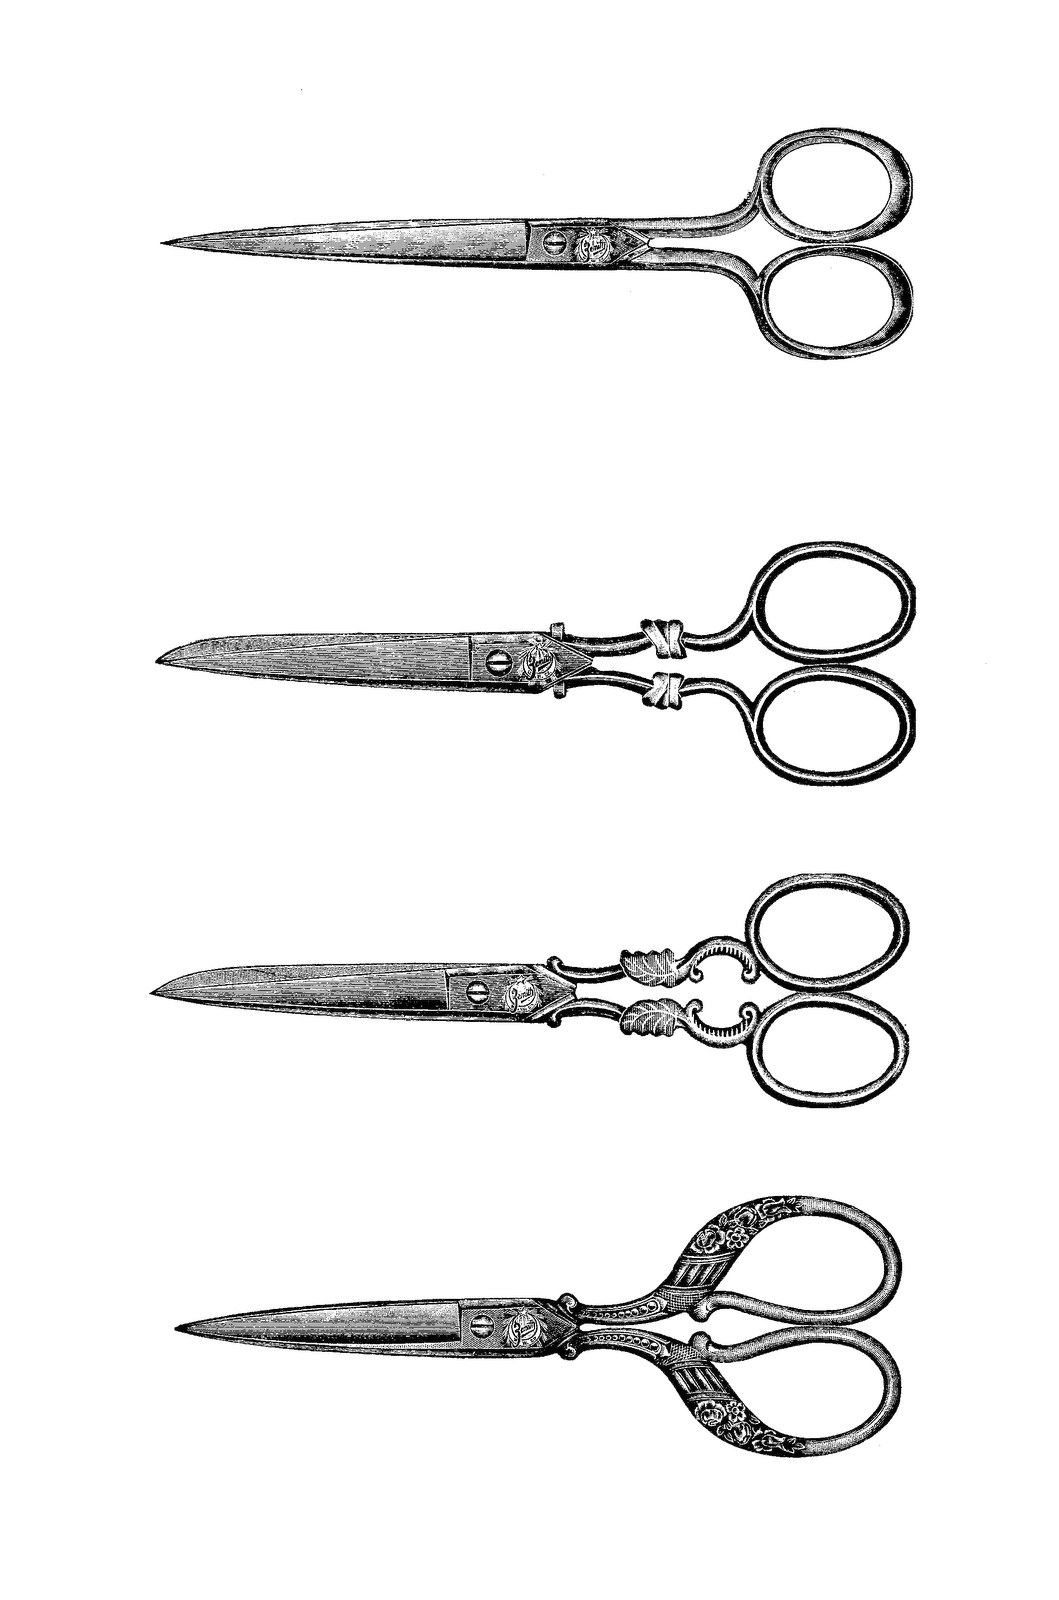 Shears drawing old fashioned. Digital stamp design free